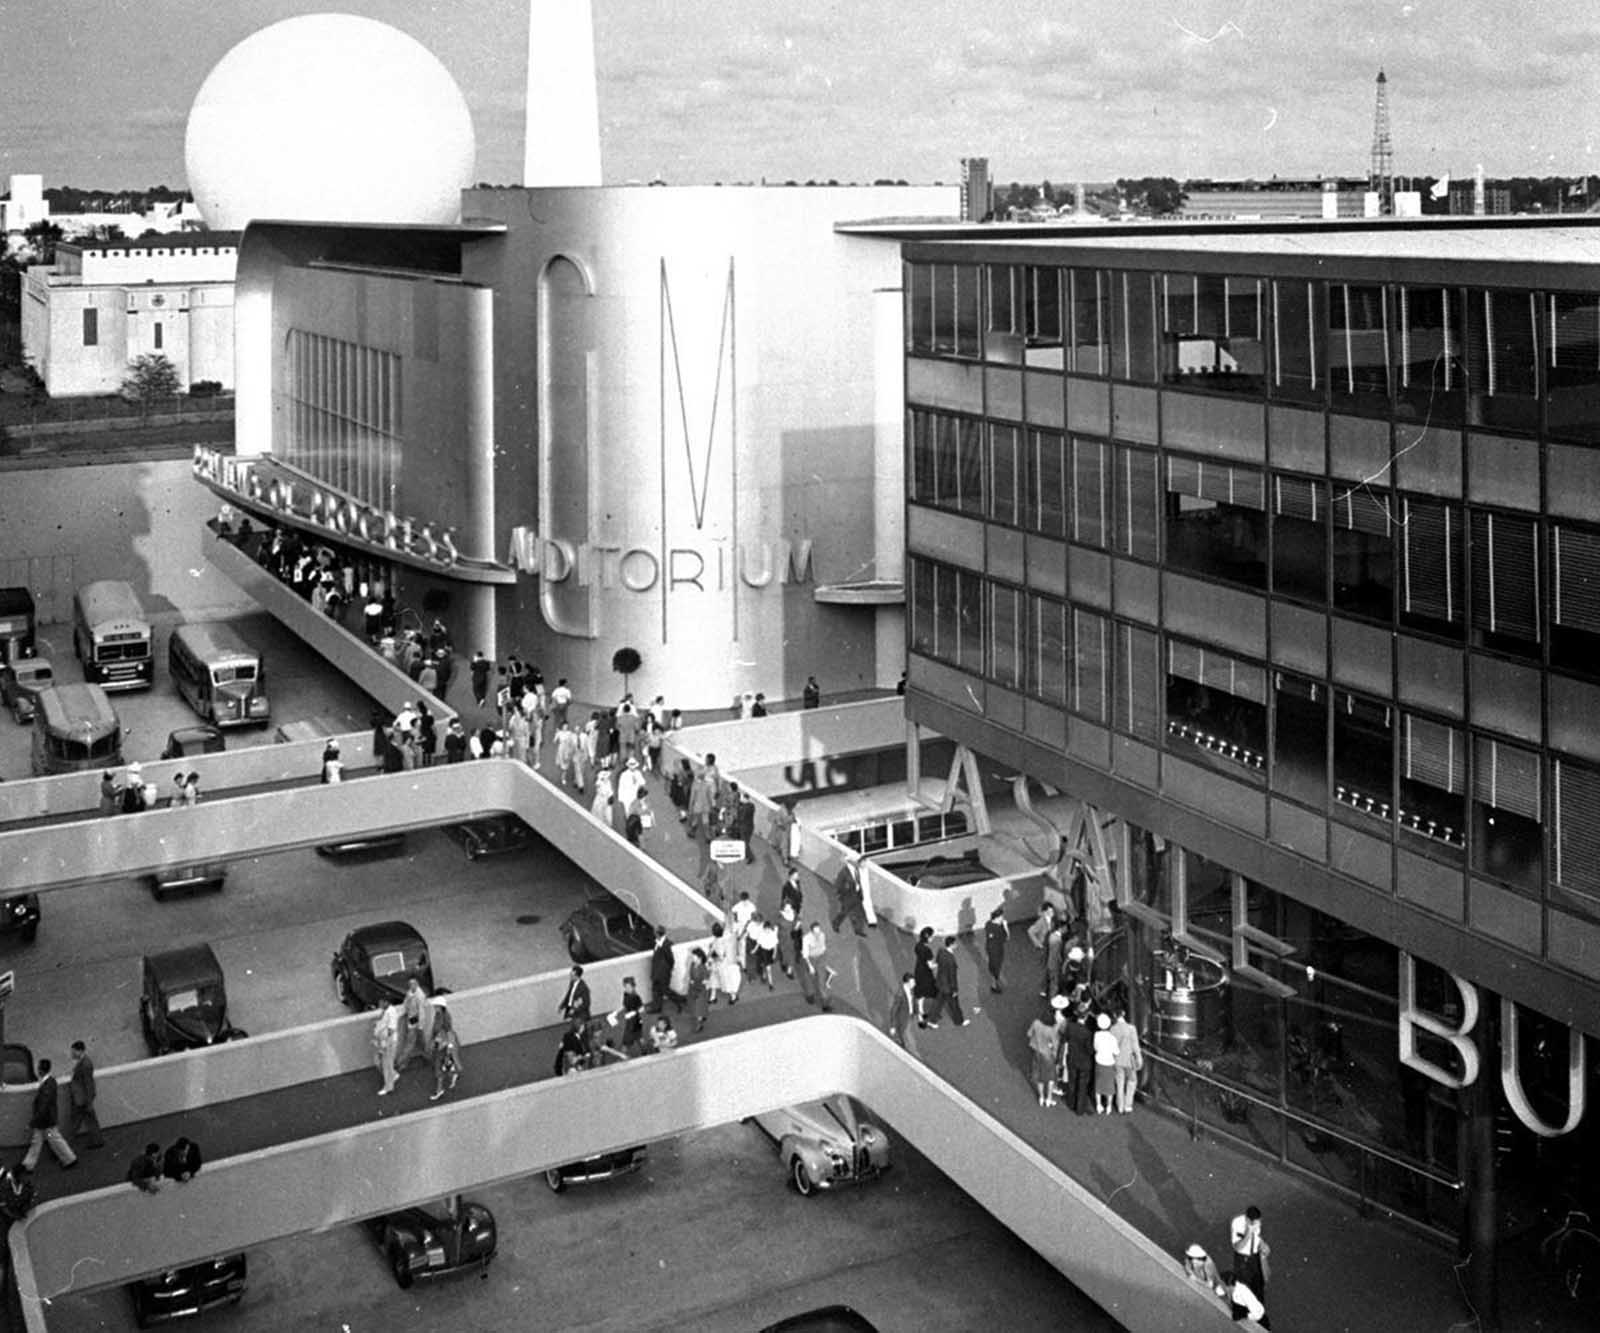 The entrance to General Motors' Exhibit at the New York World's Fair of 1939-1940. The exhibit attracted nearly 25 million visitors.